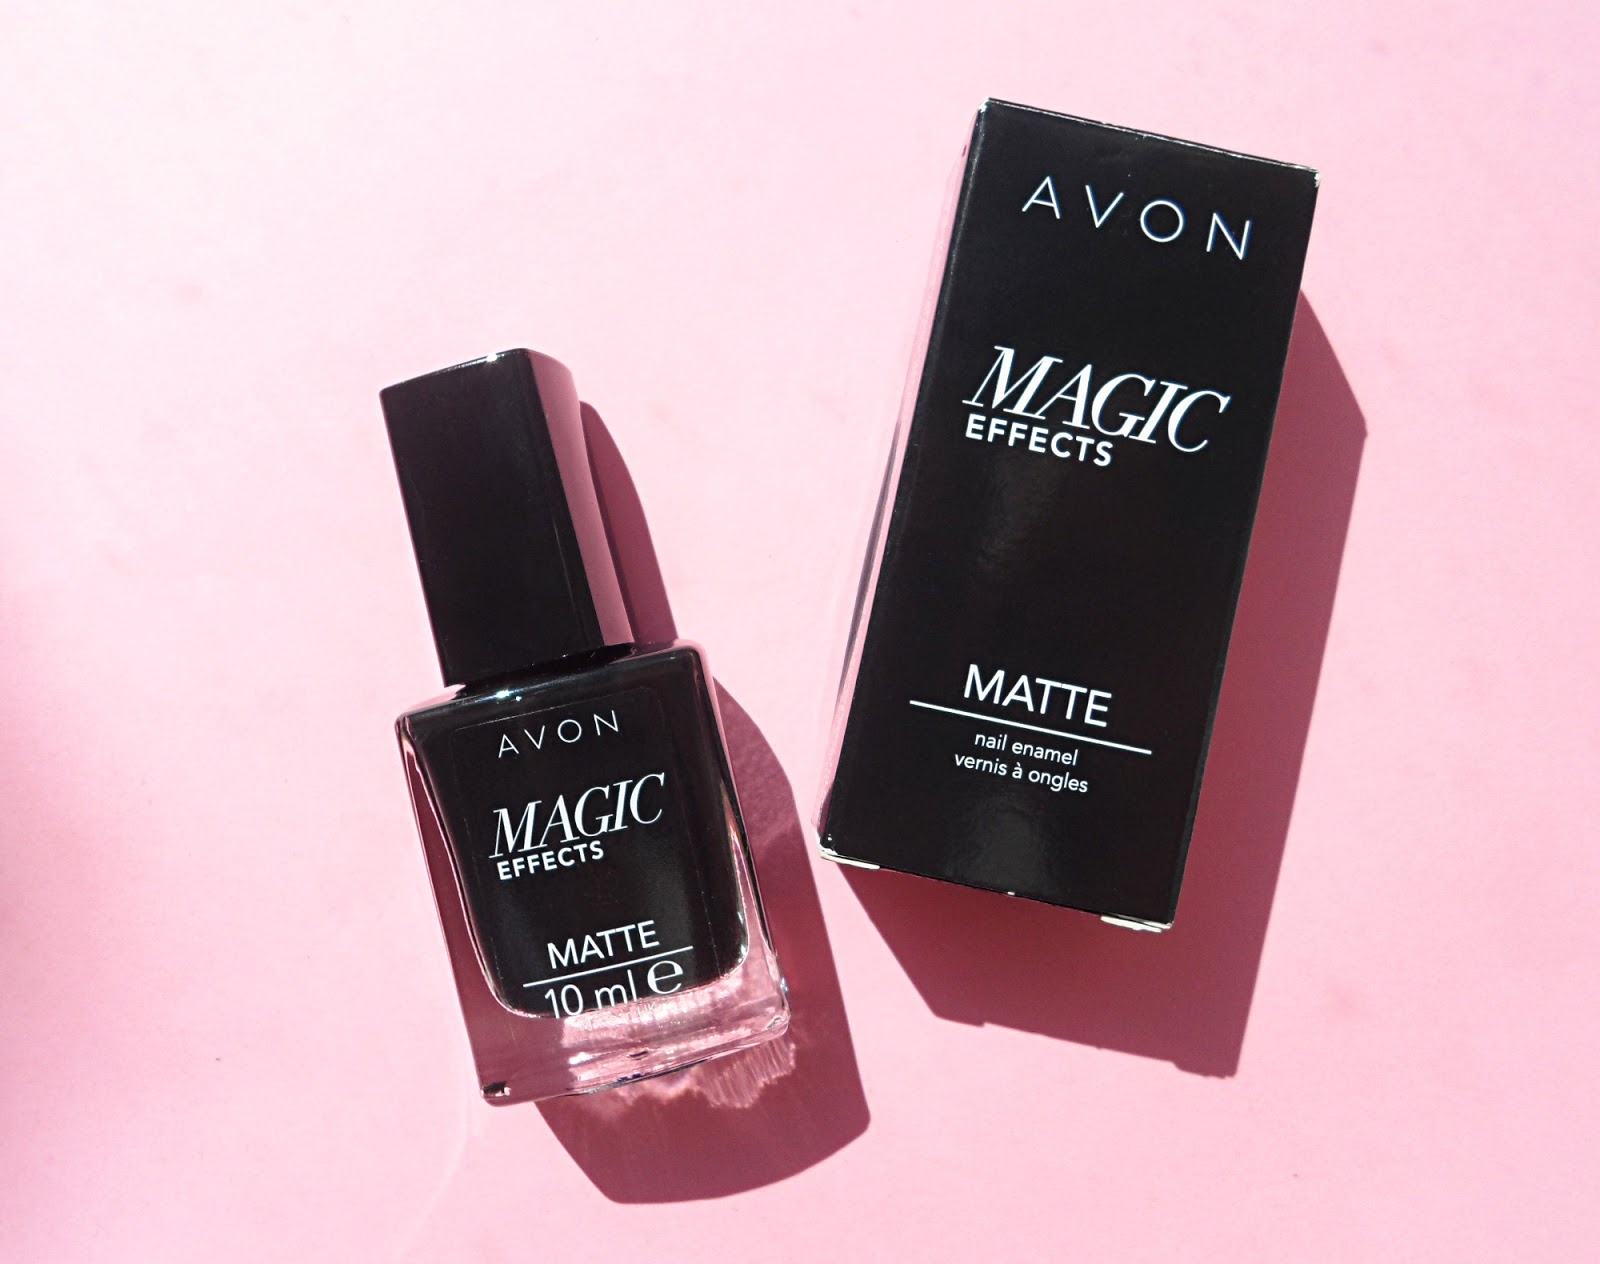 Avon Magic Effects Matte Nail Enamel | Review